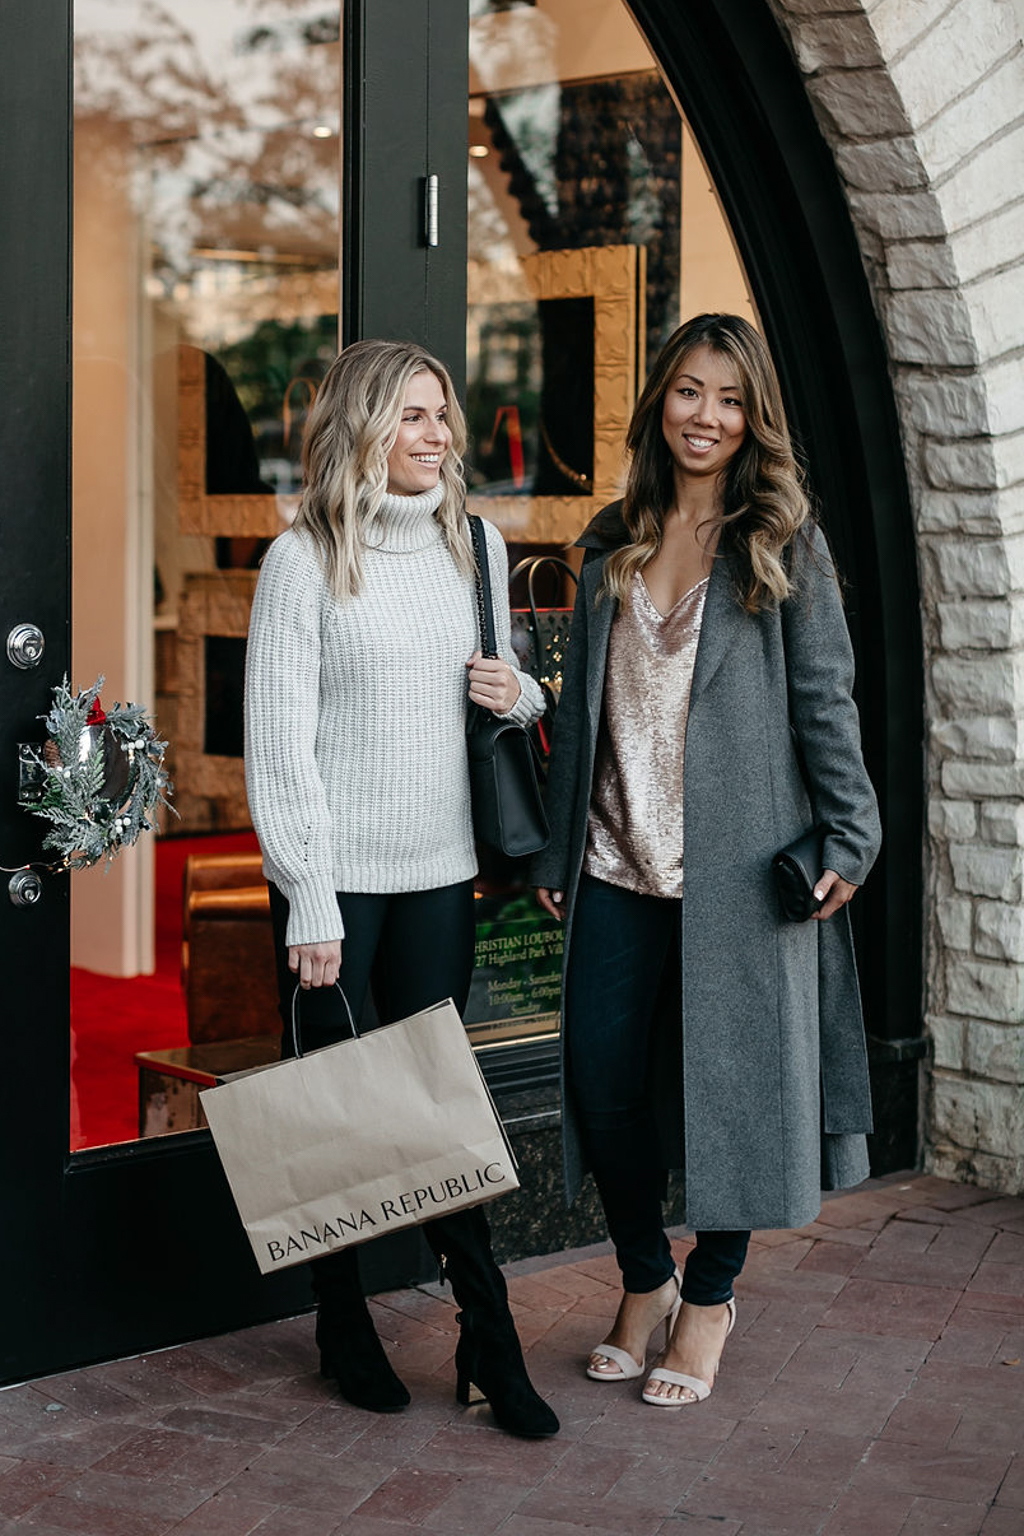 Banana Republic holiday style - One Small Blonde